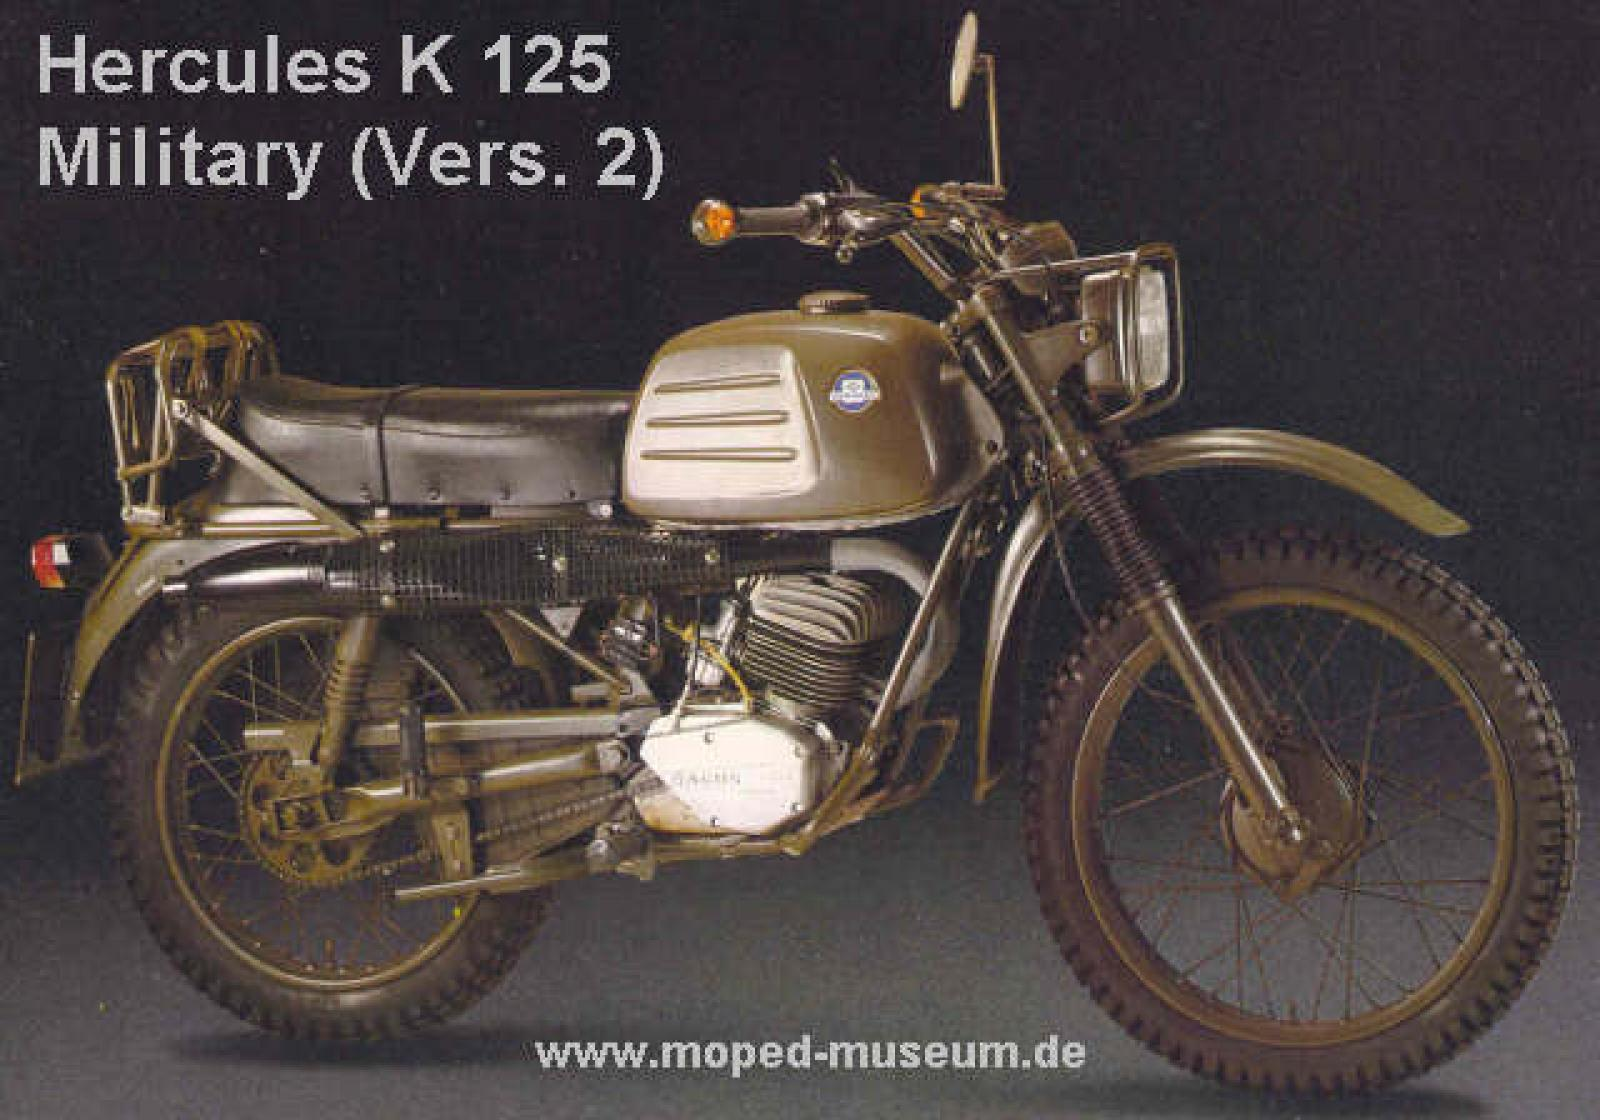 Hercules K 125 Military 1990 images #74751